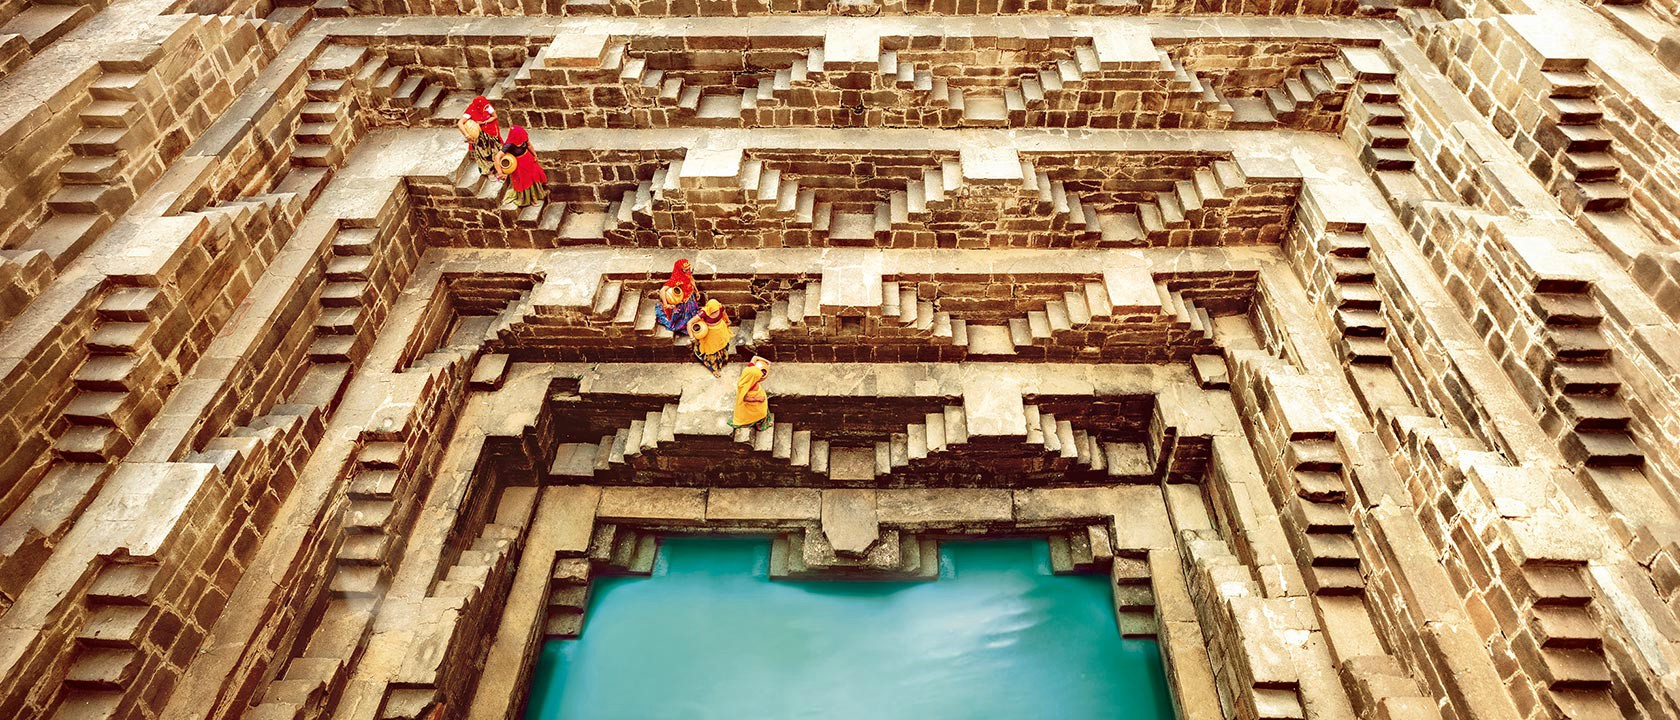 chand baori activities besides exploring the splendid forts and palaces